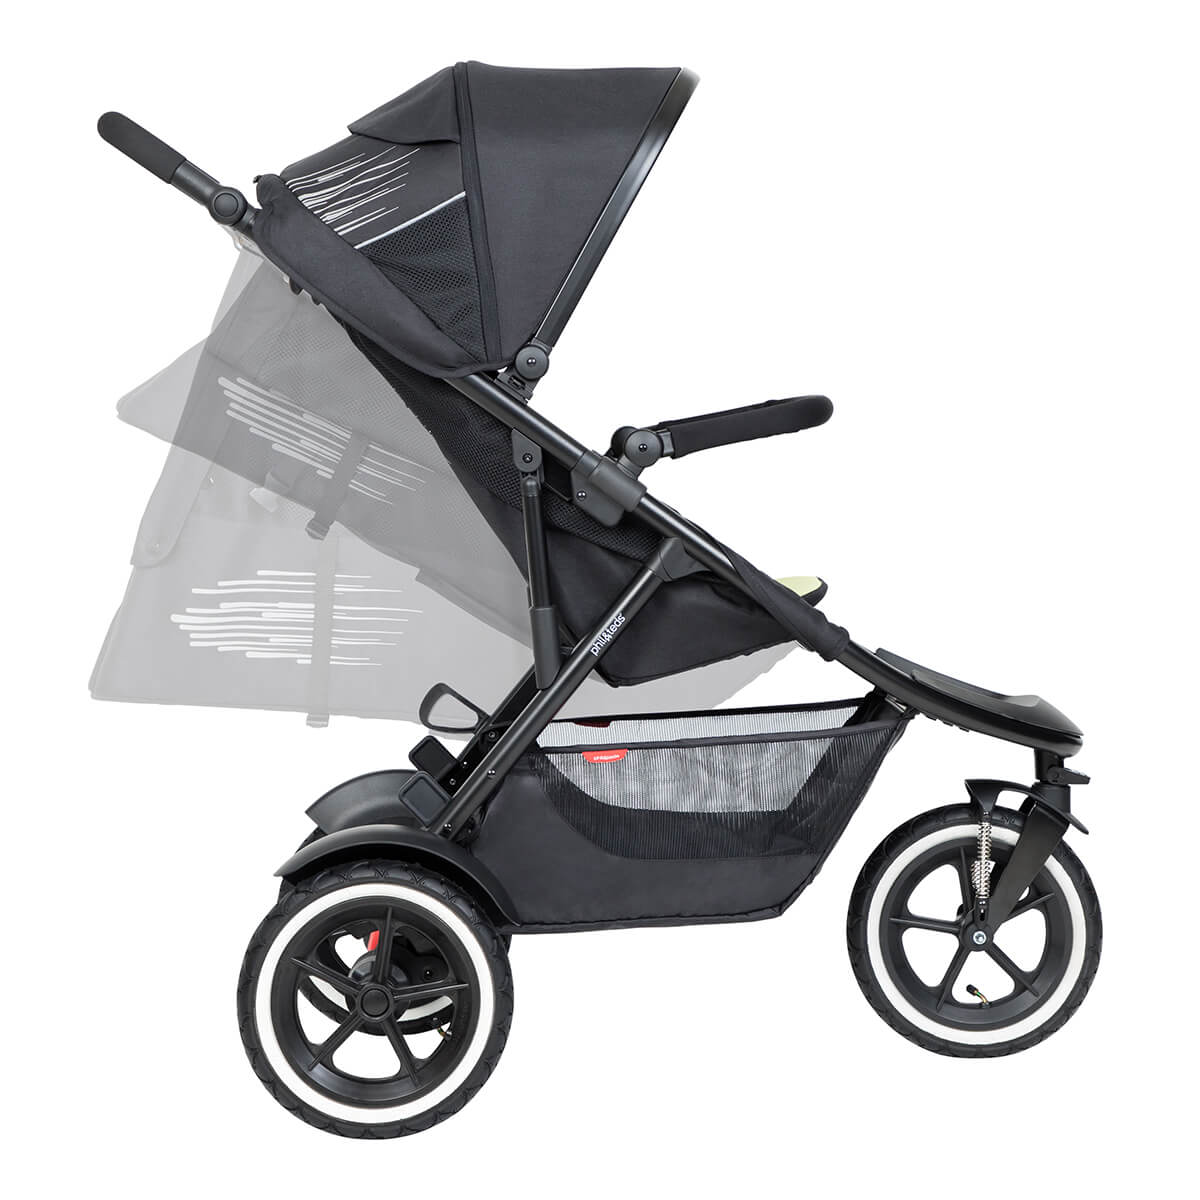 https://cdn.accentuate.io/4509898735693/19466203824322/philteds-sport-buggy-can-recline-in-multiple-angles-including-full-recline-for-newborn-baby-v1626485359363.jpg?1200x1200